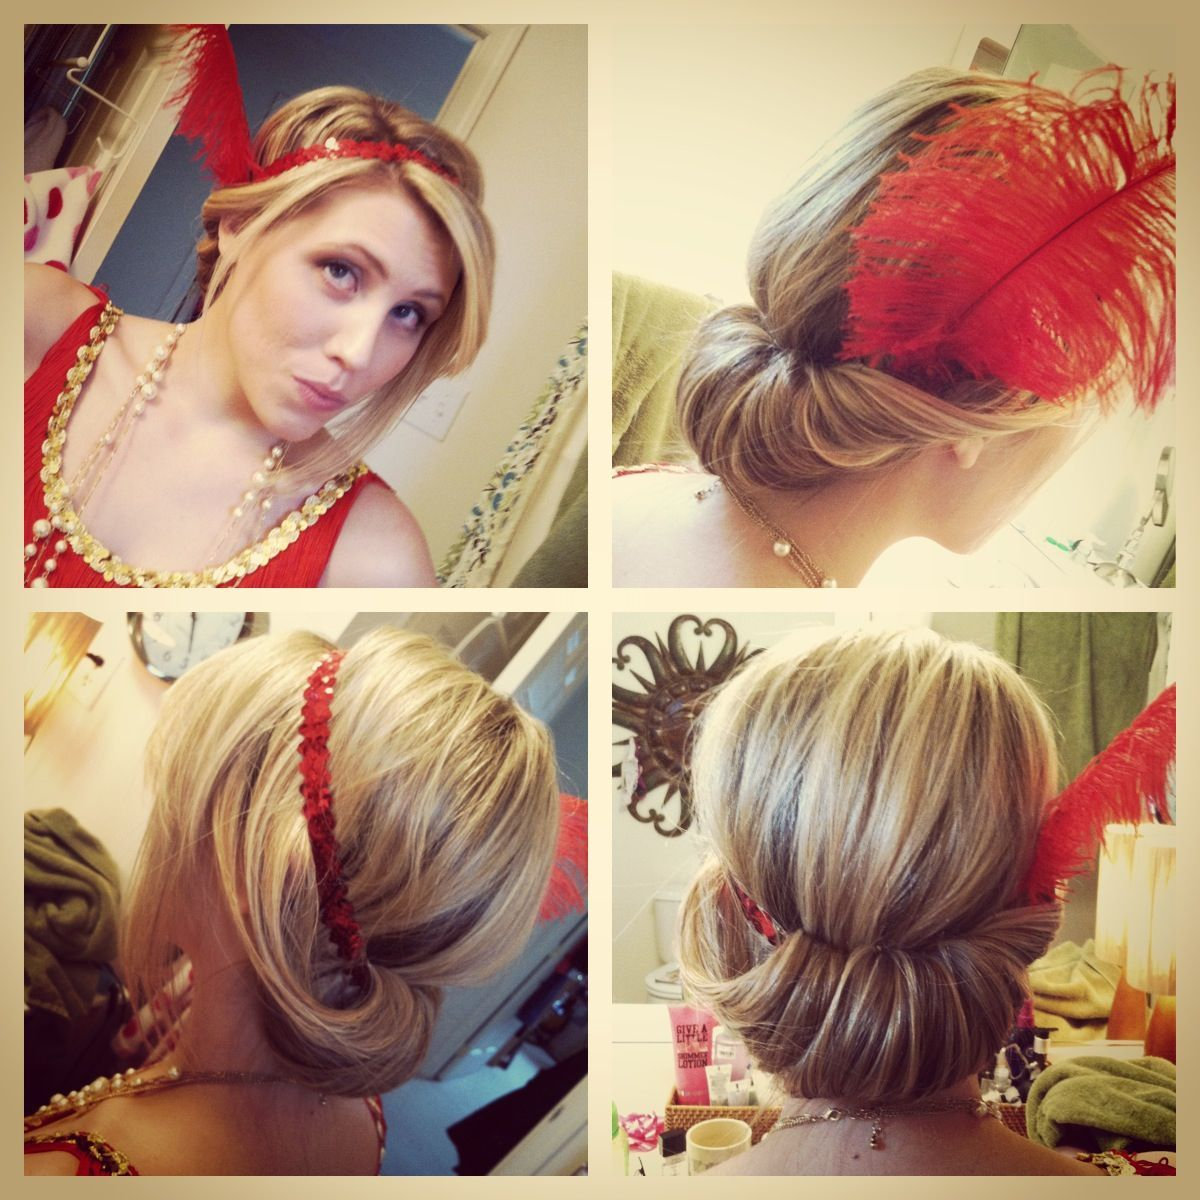 Done by me. 1920's flapper hair! #flapperhair Done by me. 1920's flapper hair! #flapperhair